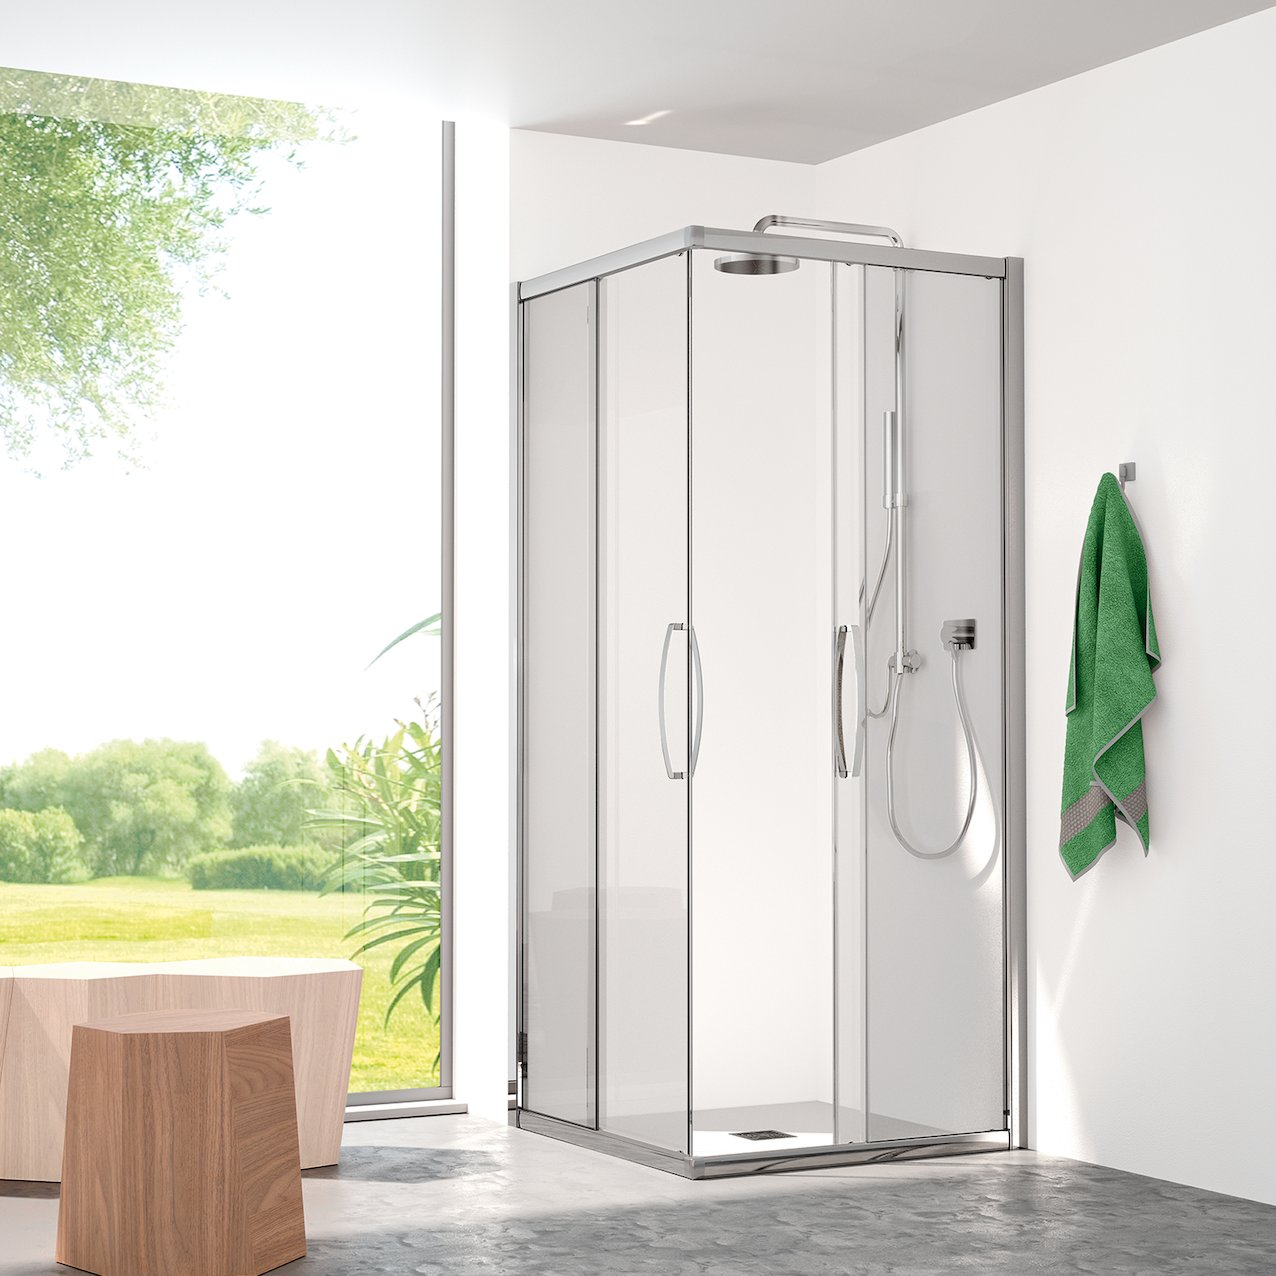 Sliding Shower Enclosure Angel